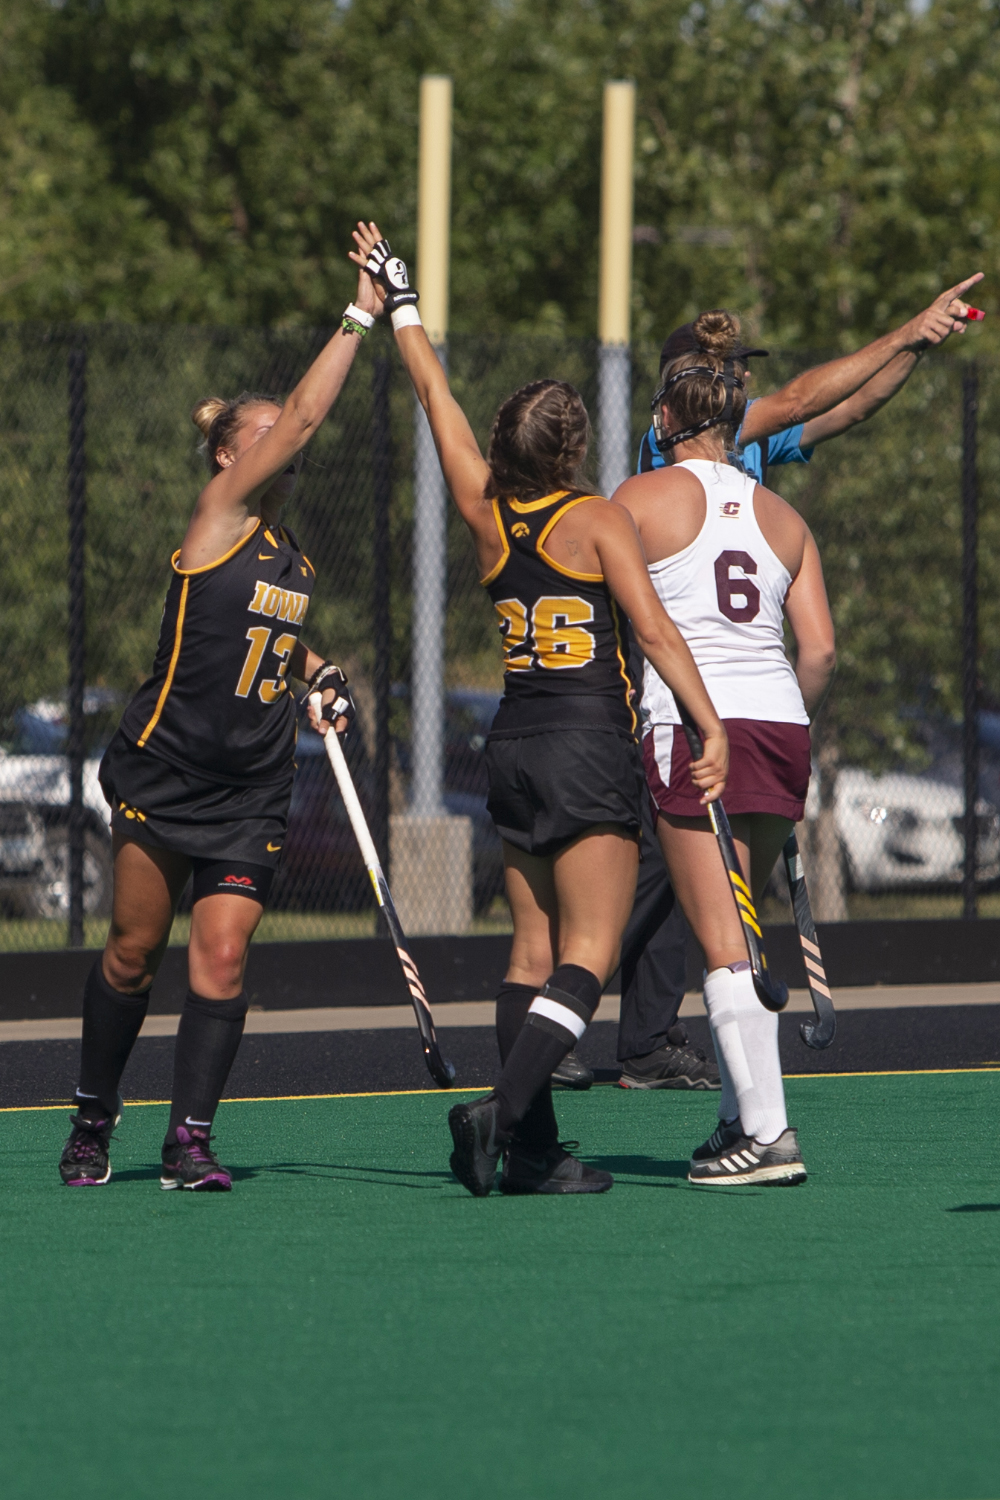 Iowa+forwards+Maddy+Murphy+and+Leah+Zellner+celebrate+a+goal+during+a+field+hockey+game+between+Iowa+and+Central+Michigan+at+Grant+Field+on+Friday%2C+September+6%2C+2019.+The+Hawkeyes+defeated+the+Chippewas%2C+11-0.